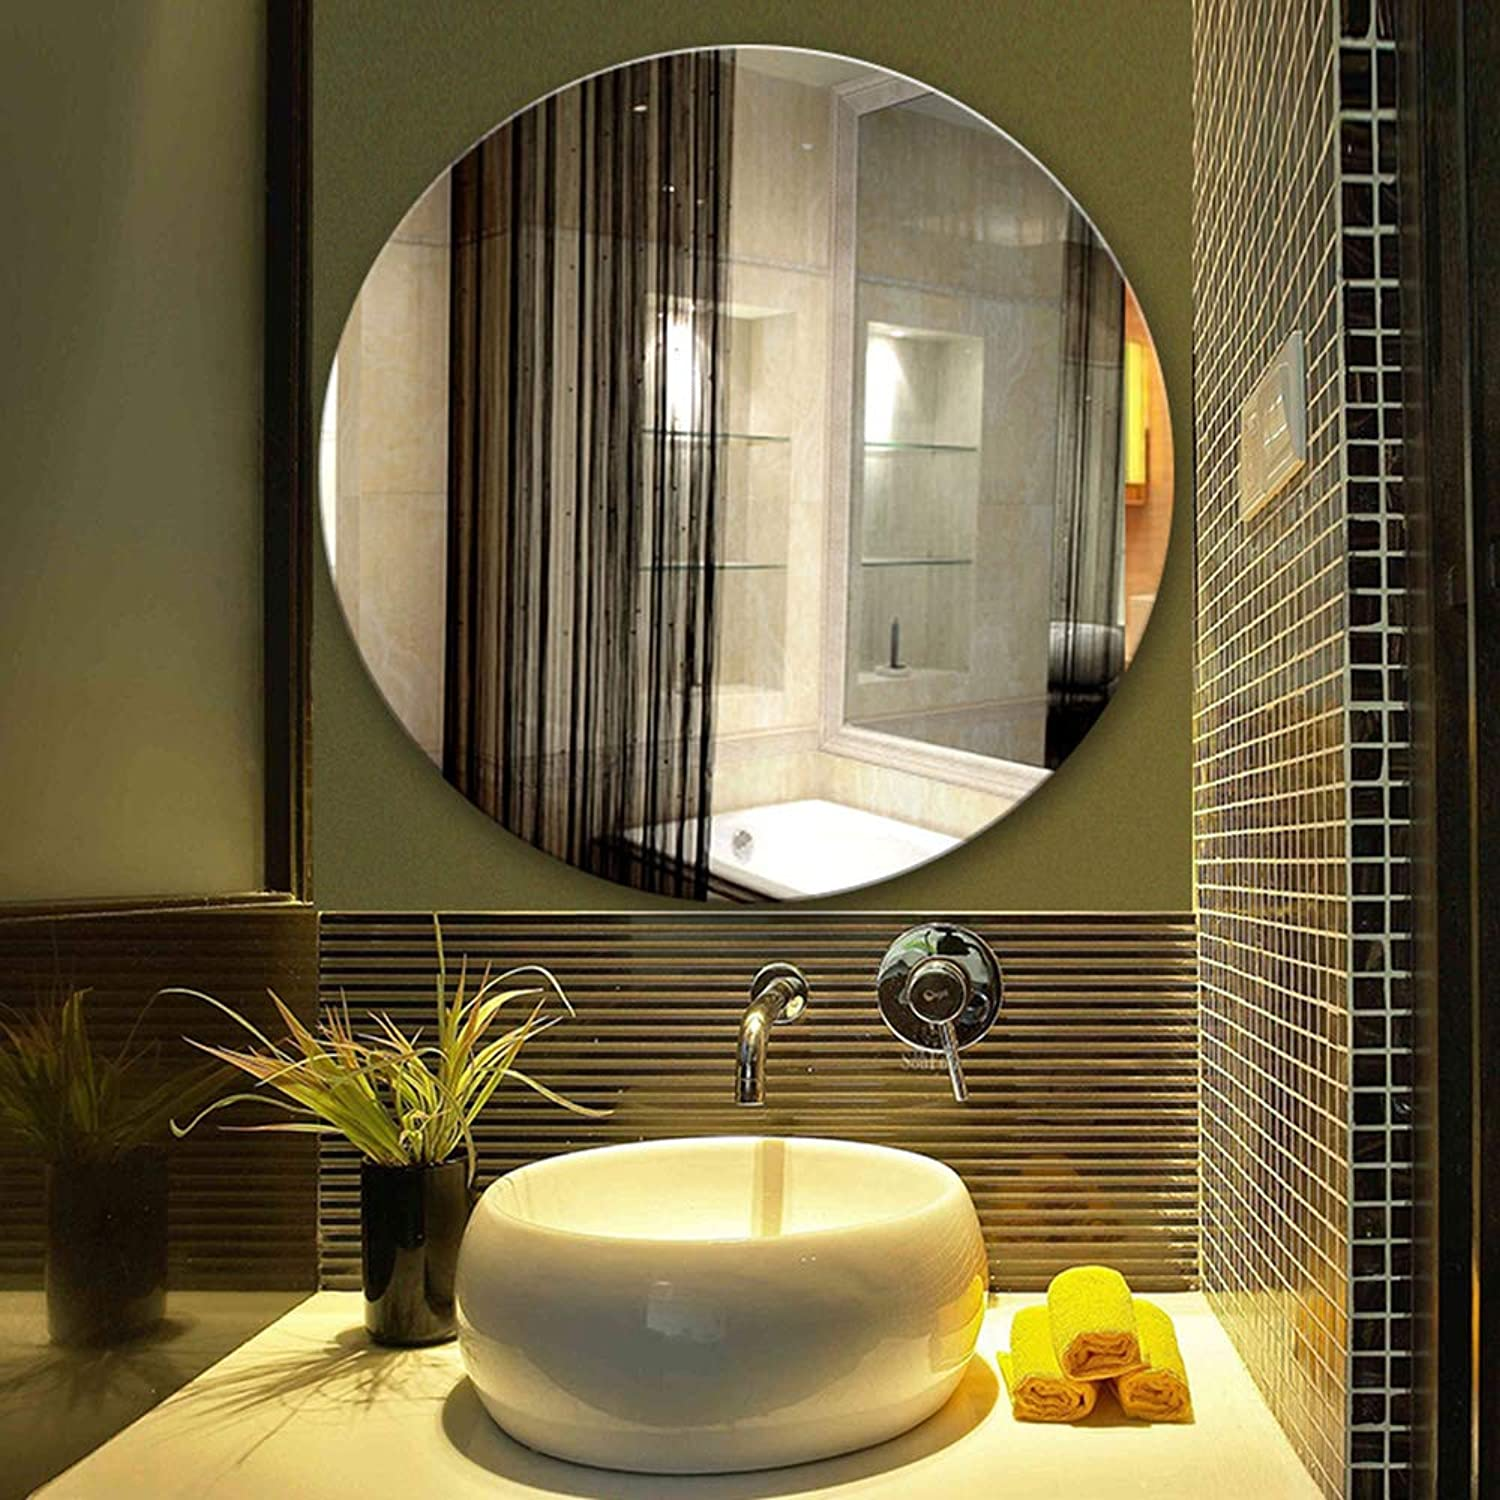 Bathroom mirror Wall Mount Mirror - no Frame, Suitable for Bathroom and Different Rooms  Multiple Sizes